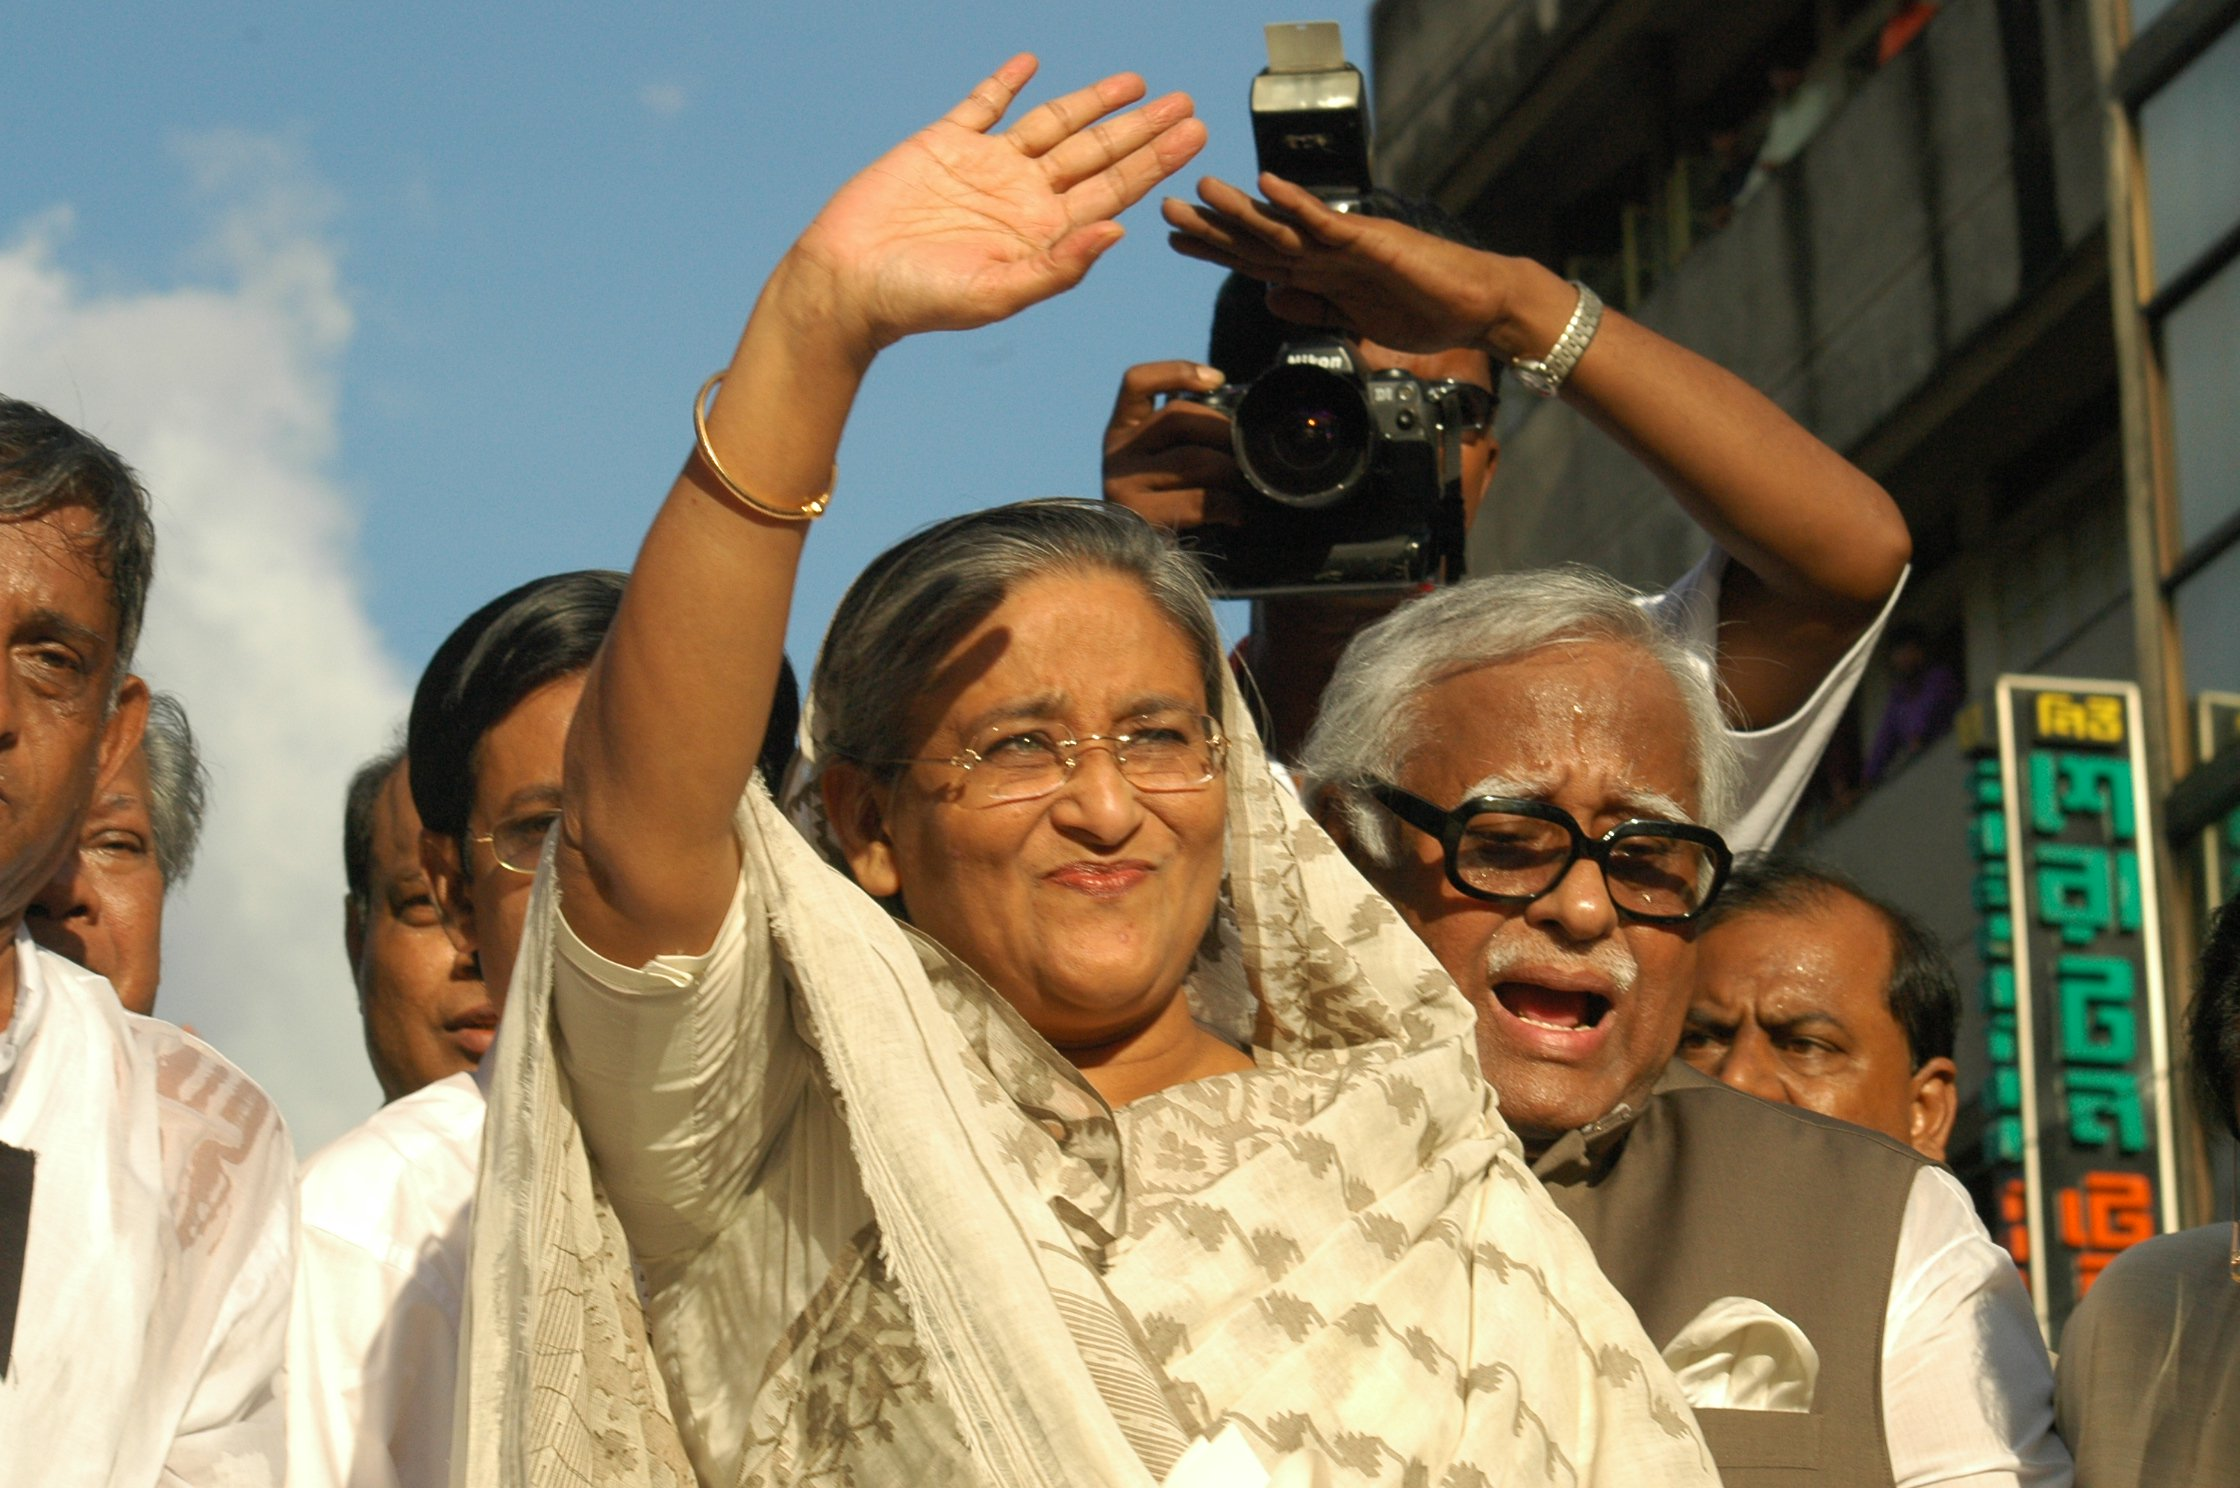 Just before the grenade attacks, the then opposition leader Sheikh Hasina waves at her party men gathered at a protest rally in front of Awami League headquarters on Bangabandhu Avenue in Dhaka on August 21, 2004. Photo: Anisur Rahman